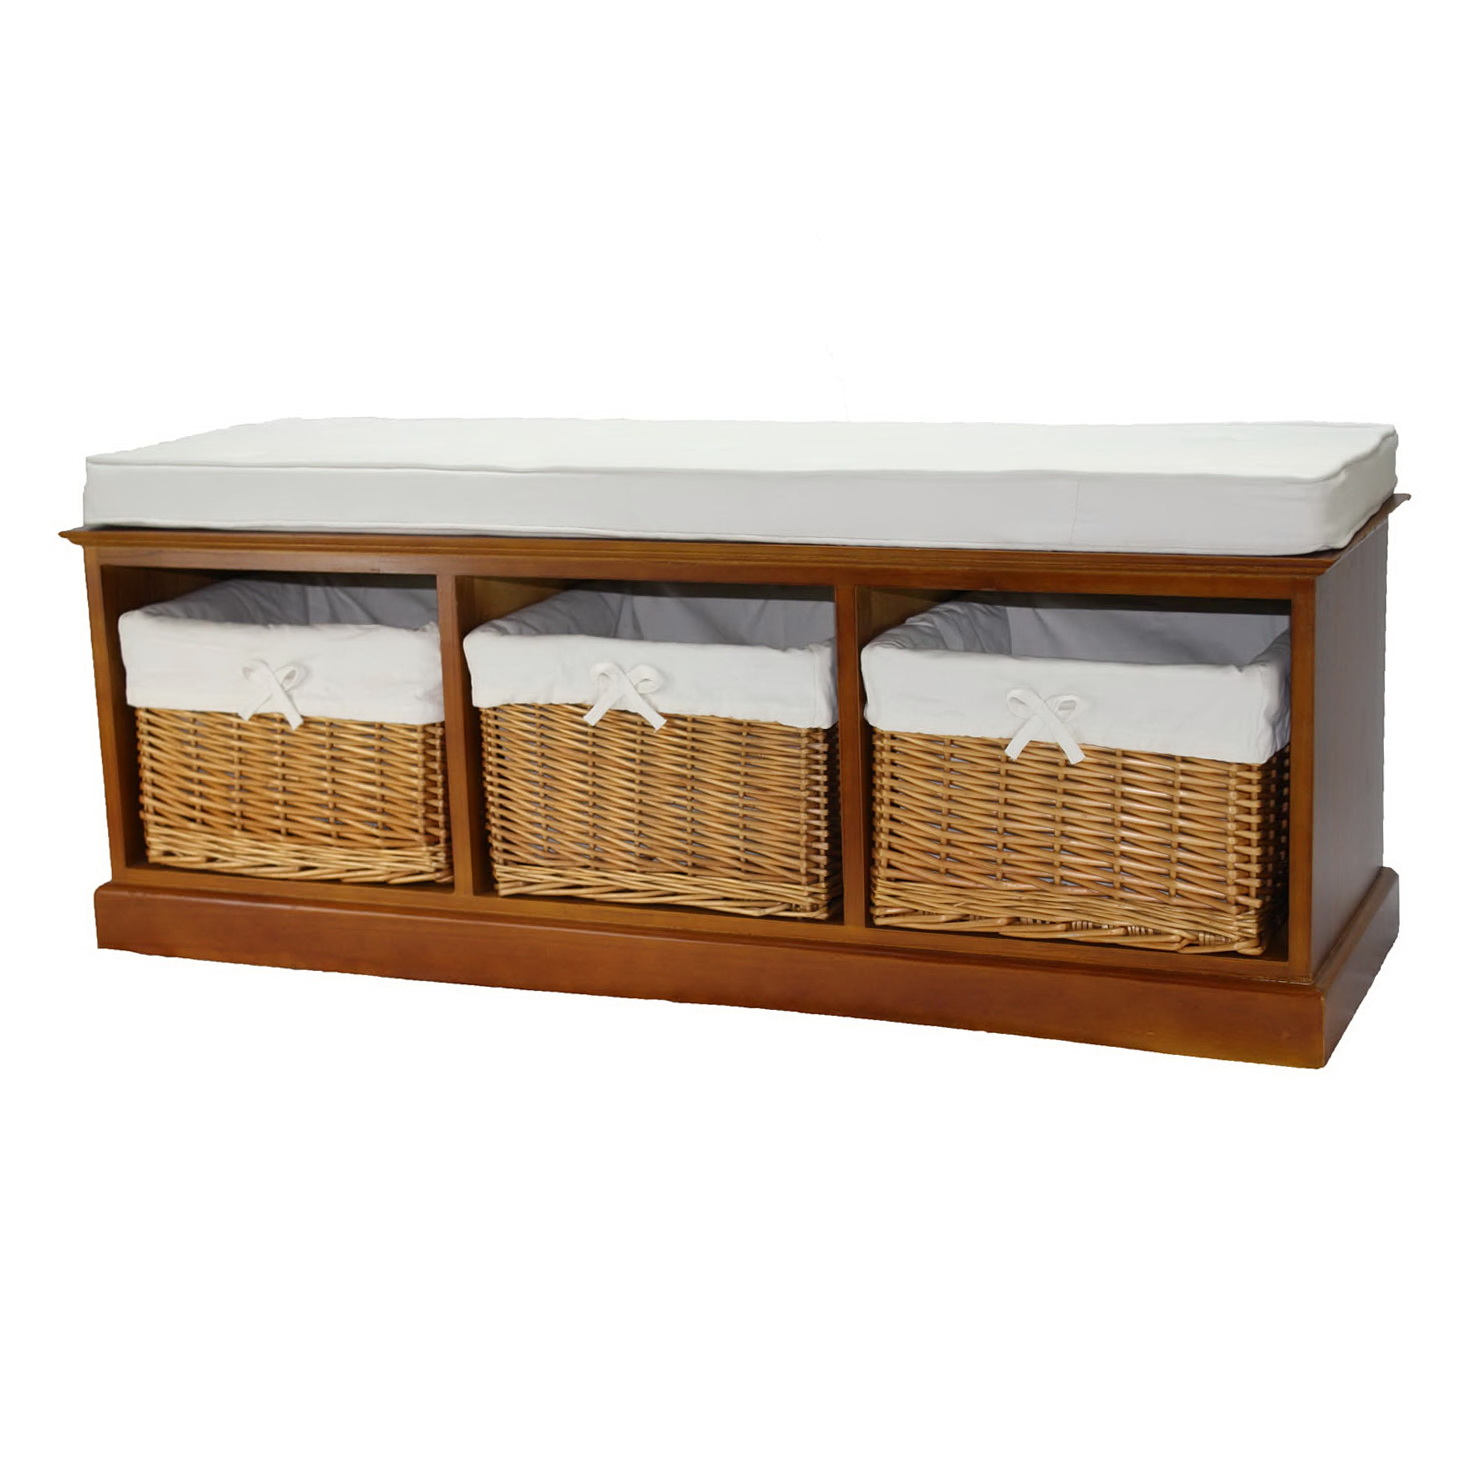 Storage Bench With Baskets